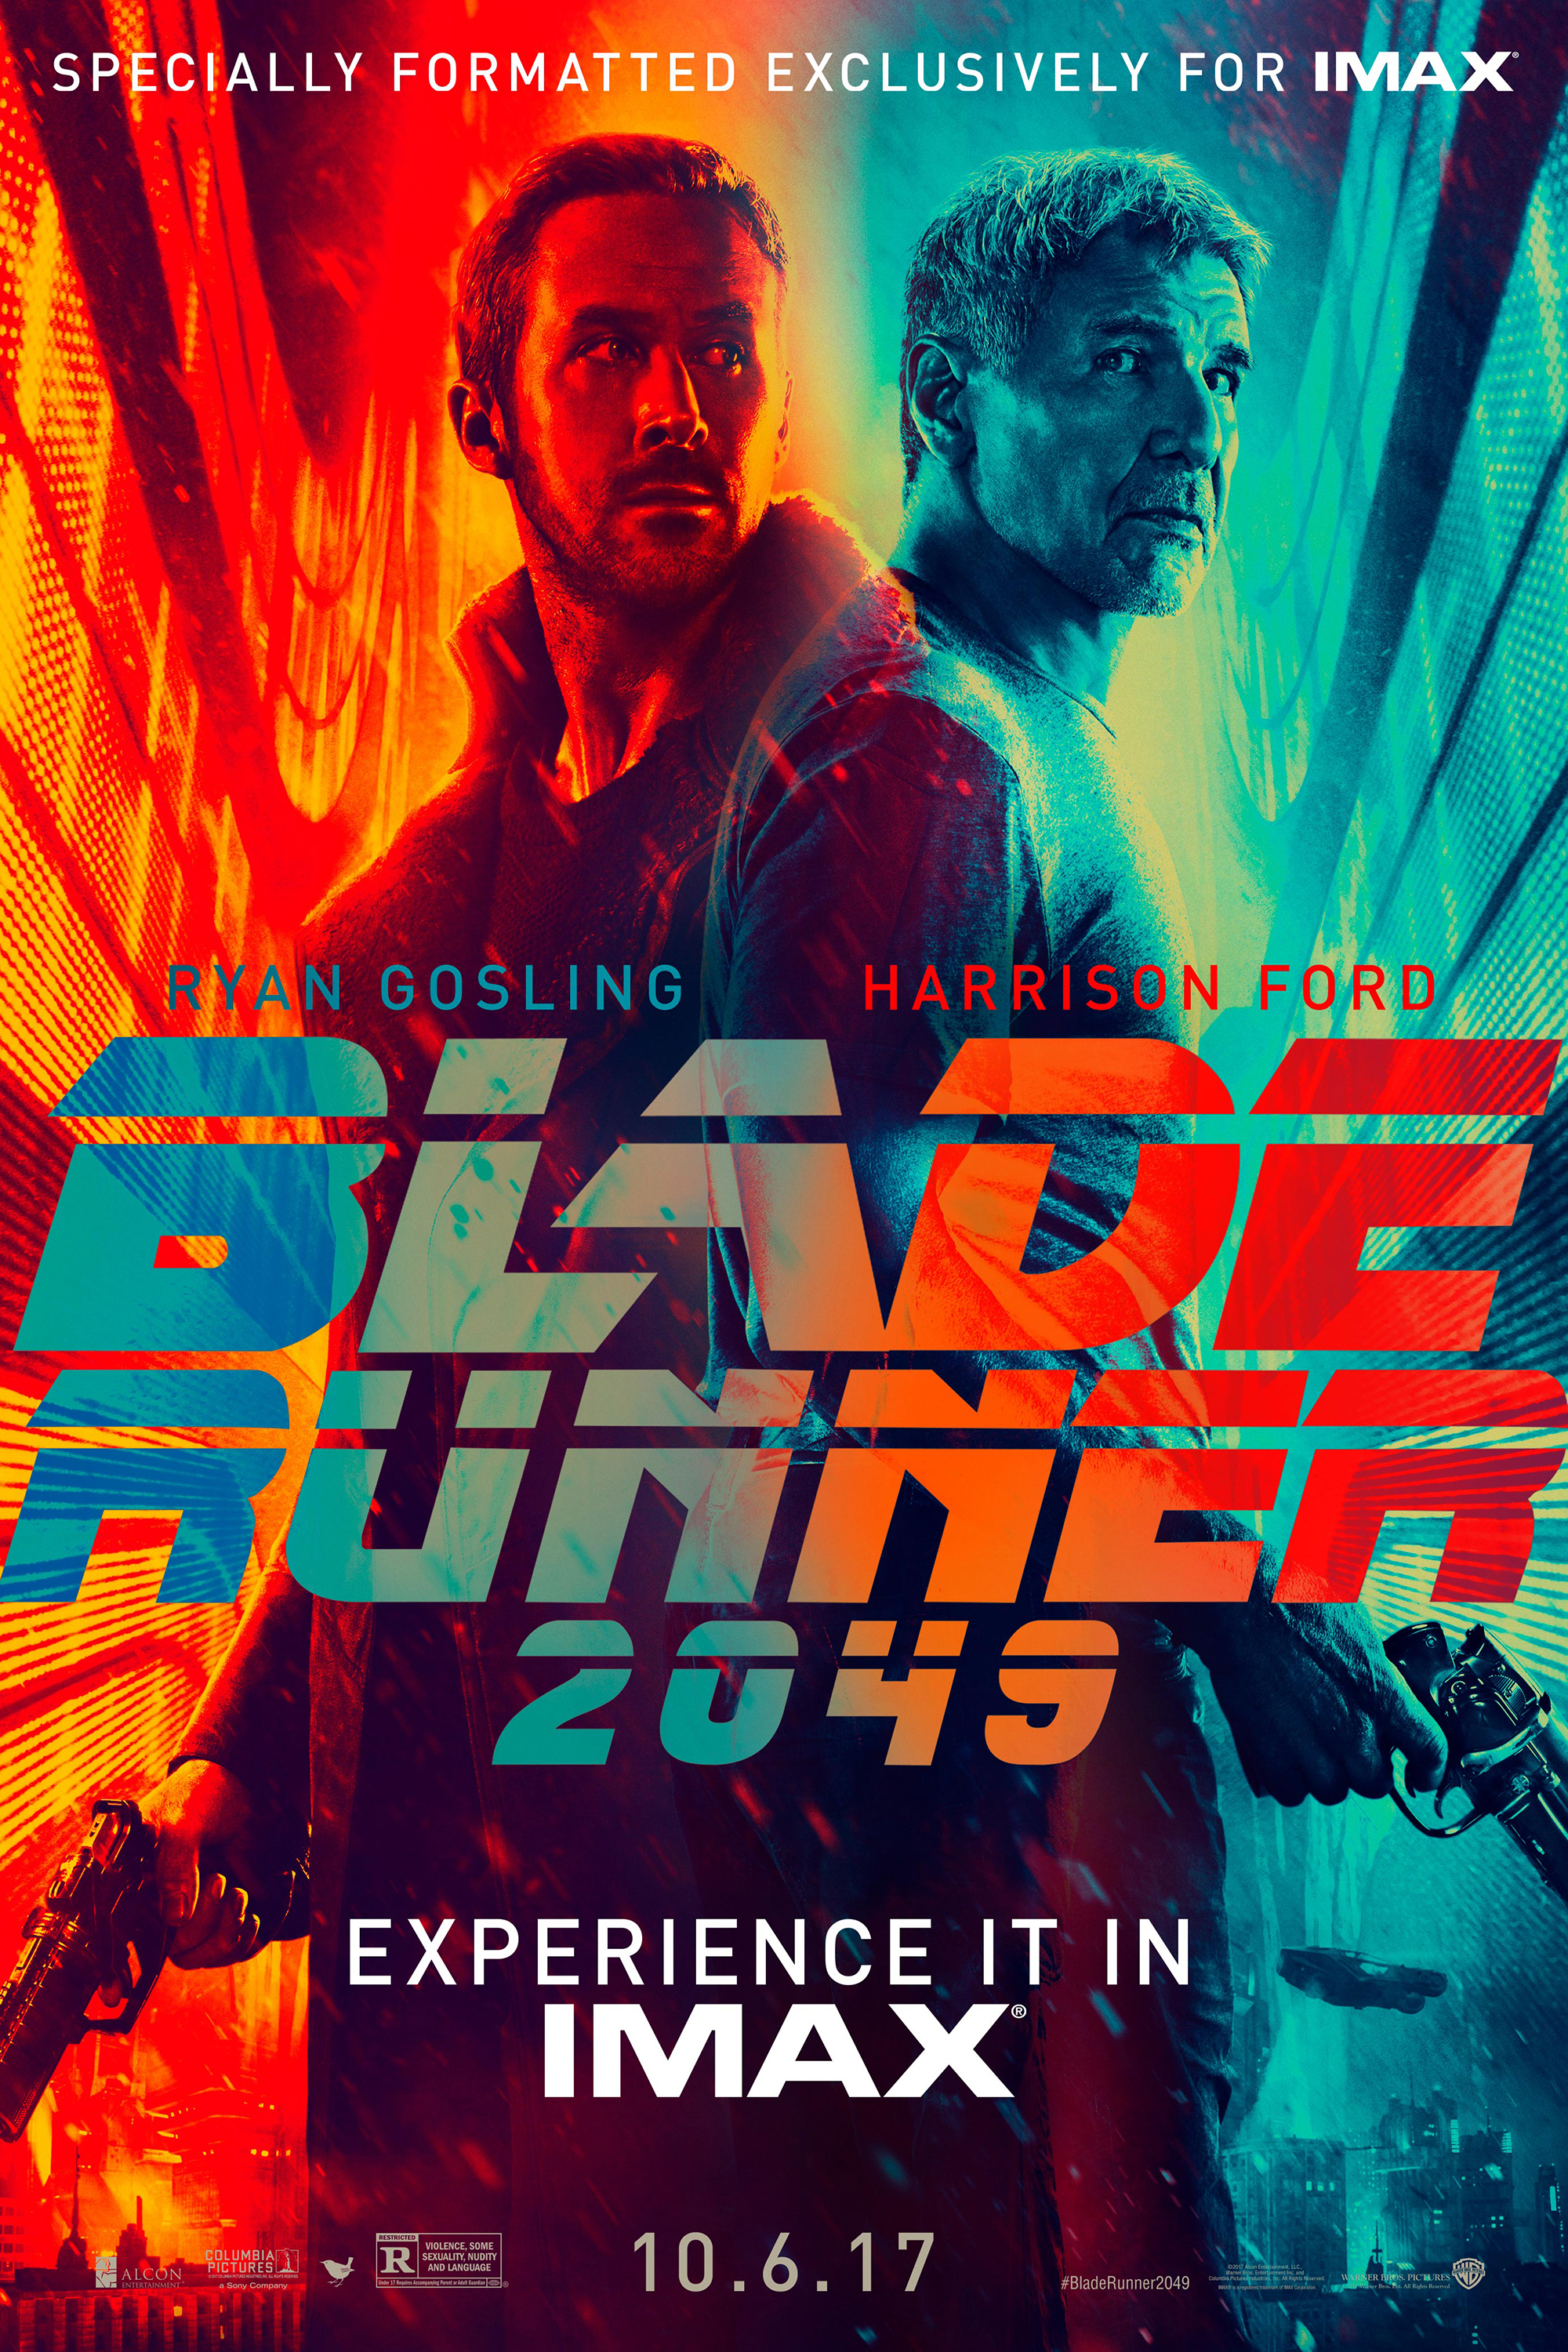 Poster for Blade Runner 2049: The IMAX 2D Experience